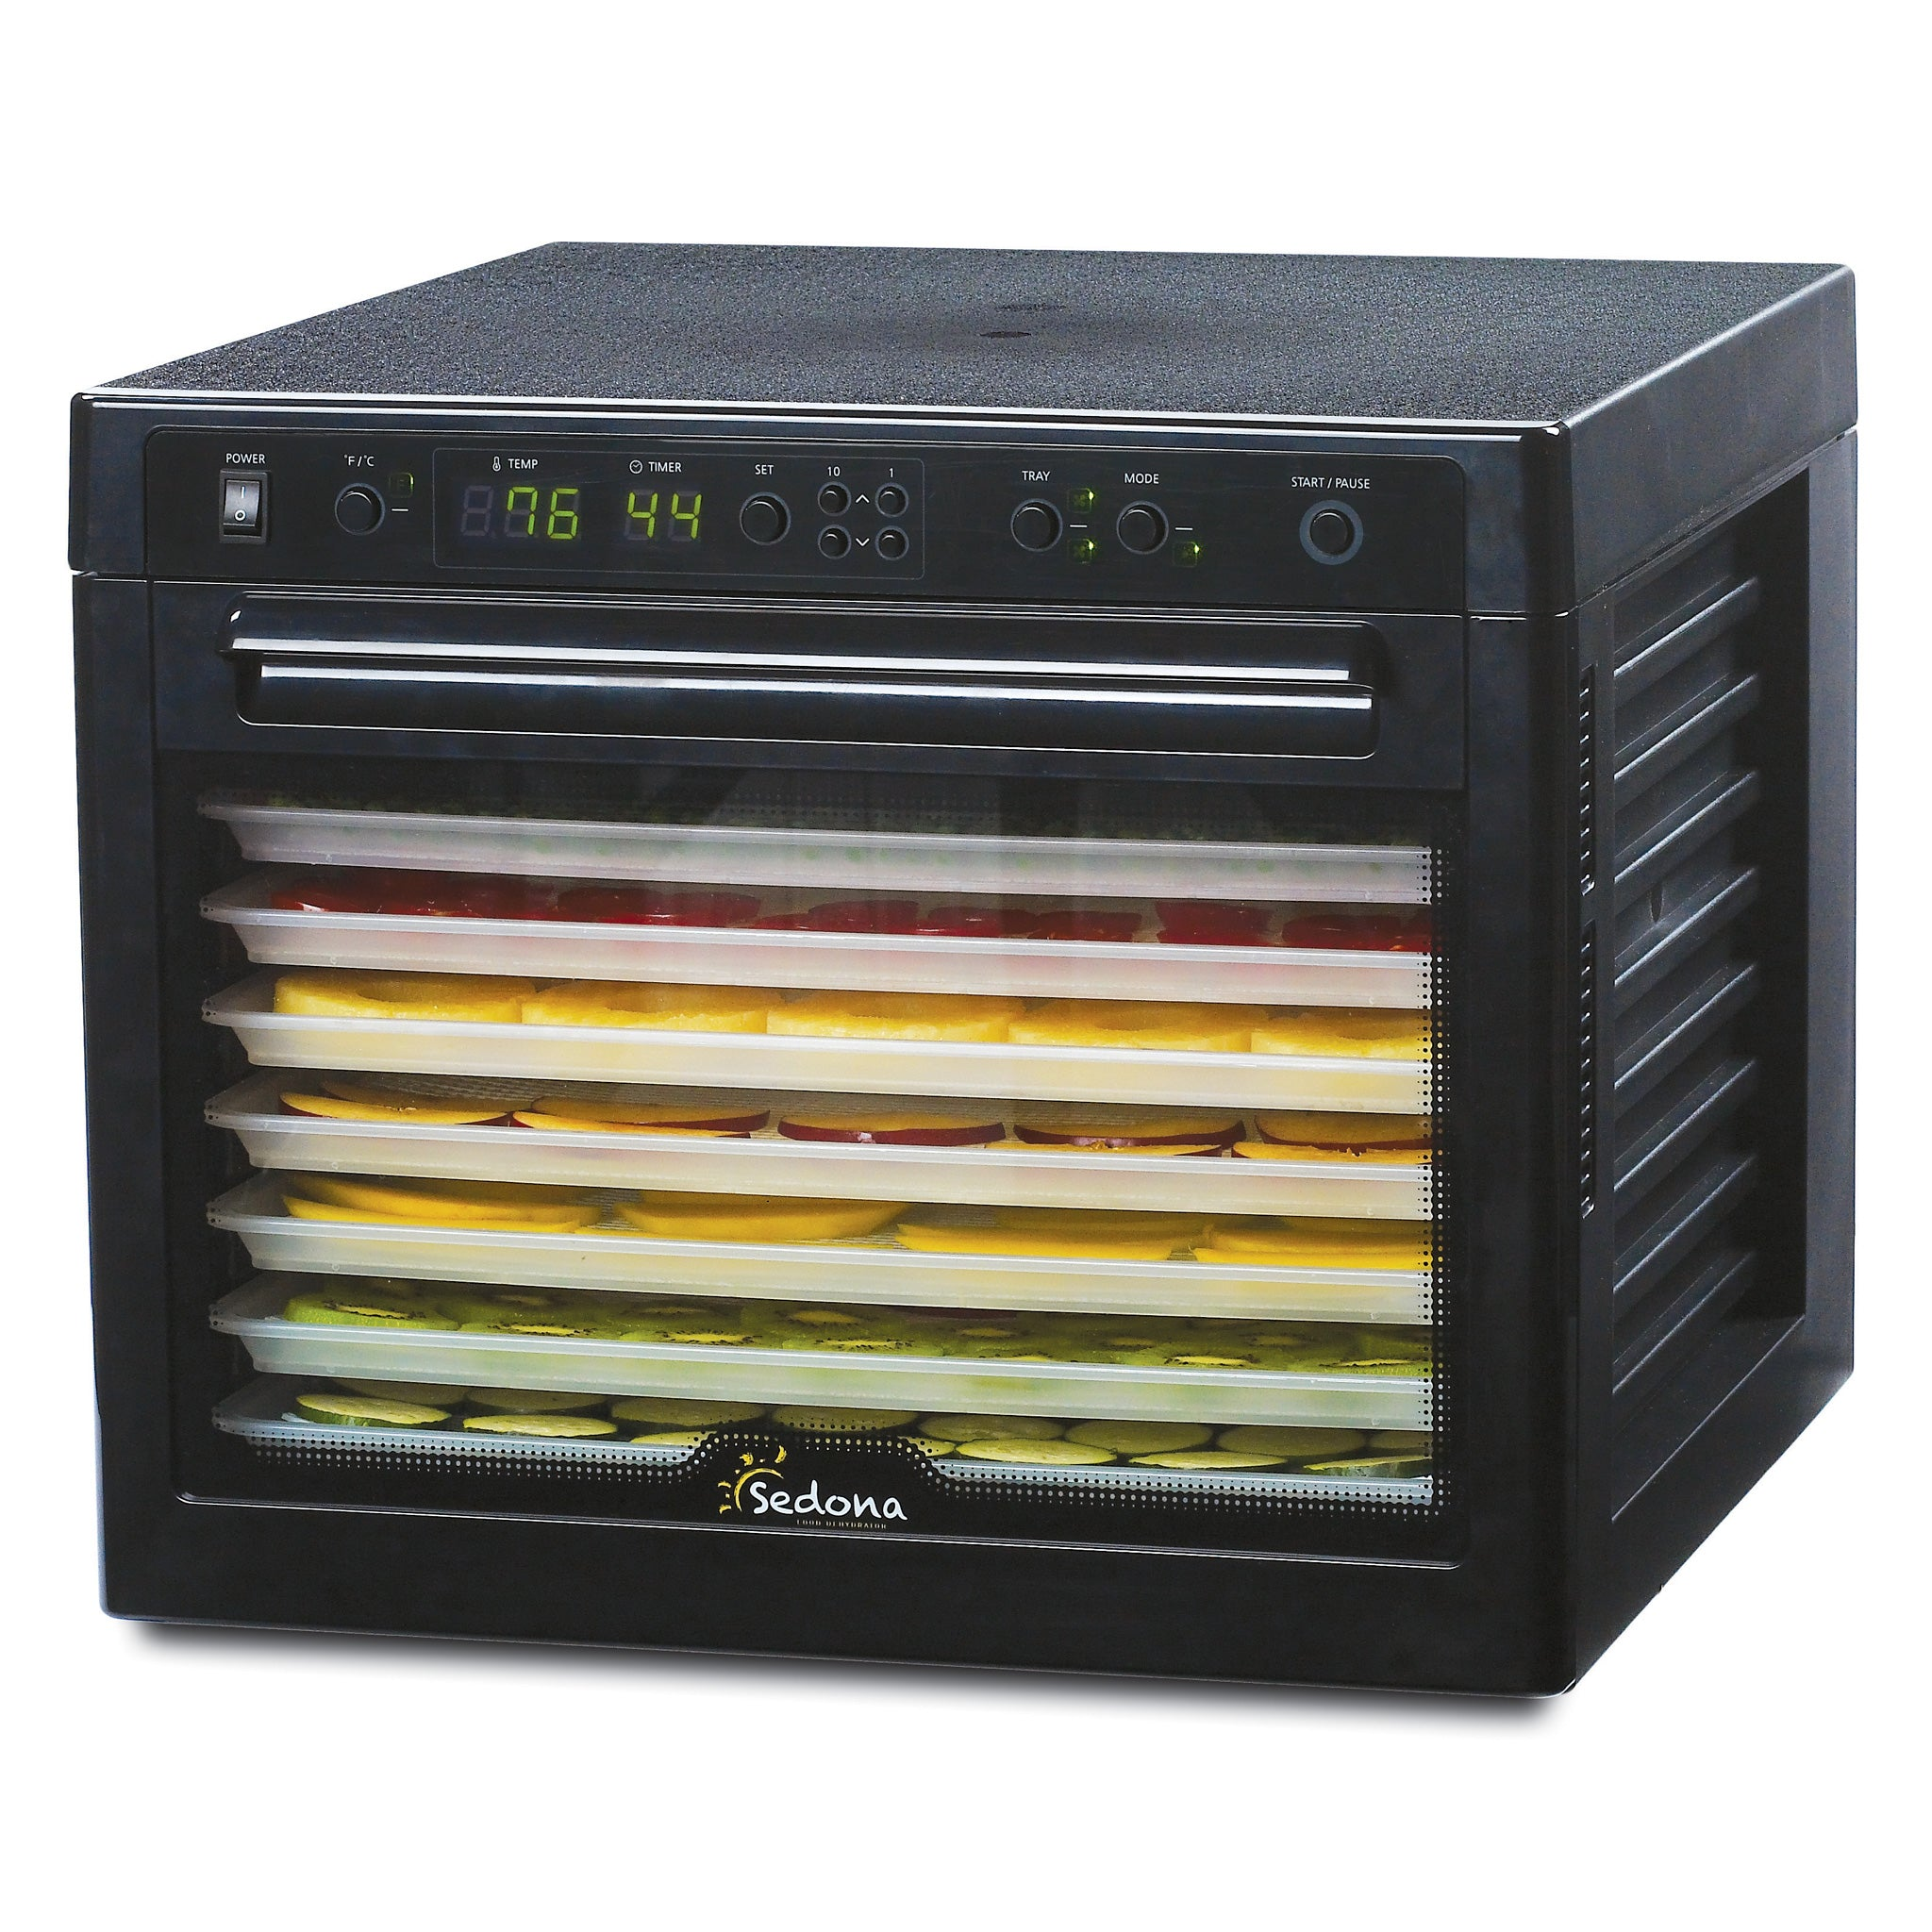 Sedona Classic Food Dehydrator with BPA-Free Plastic Trays SD-P9000-B - Tribest